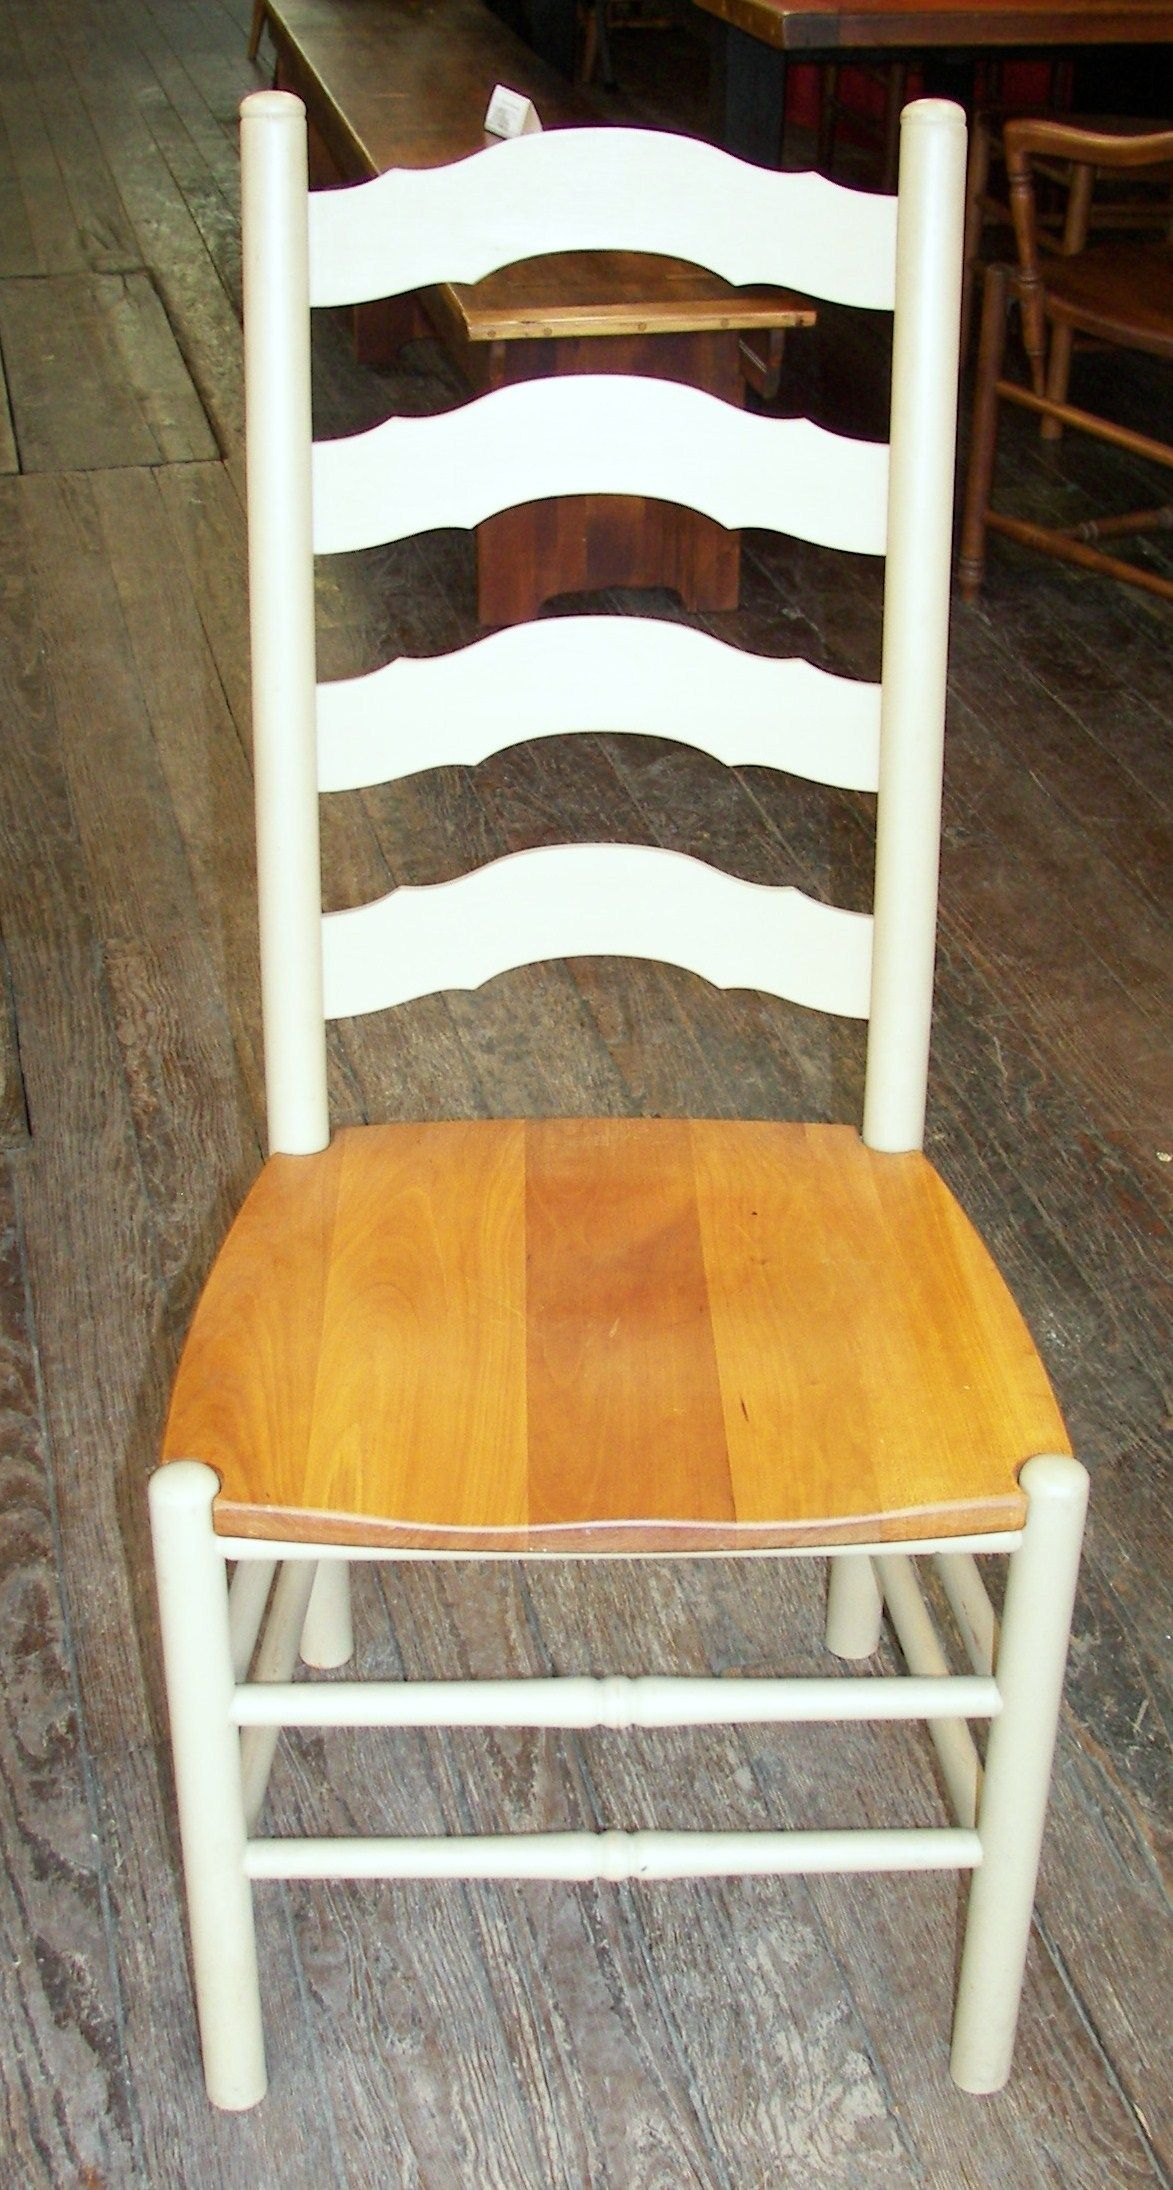 Reclaimed Barn Wood Furniture   Cherry French Country Ladder Back Chair    Www.braunfarmtables.